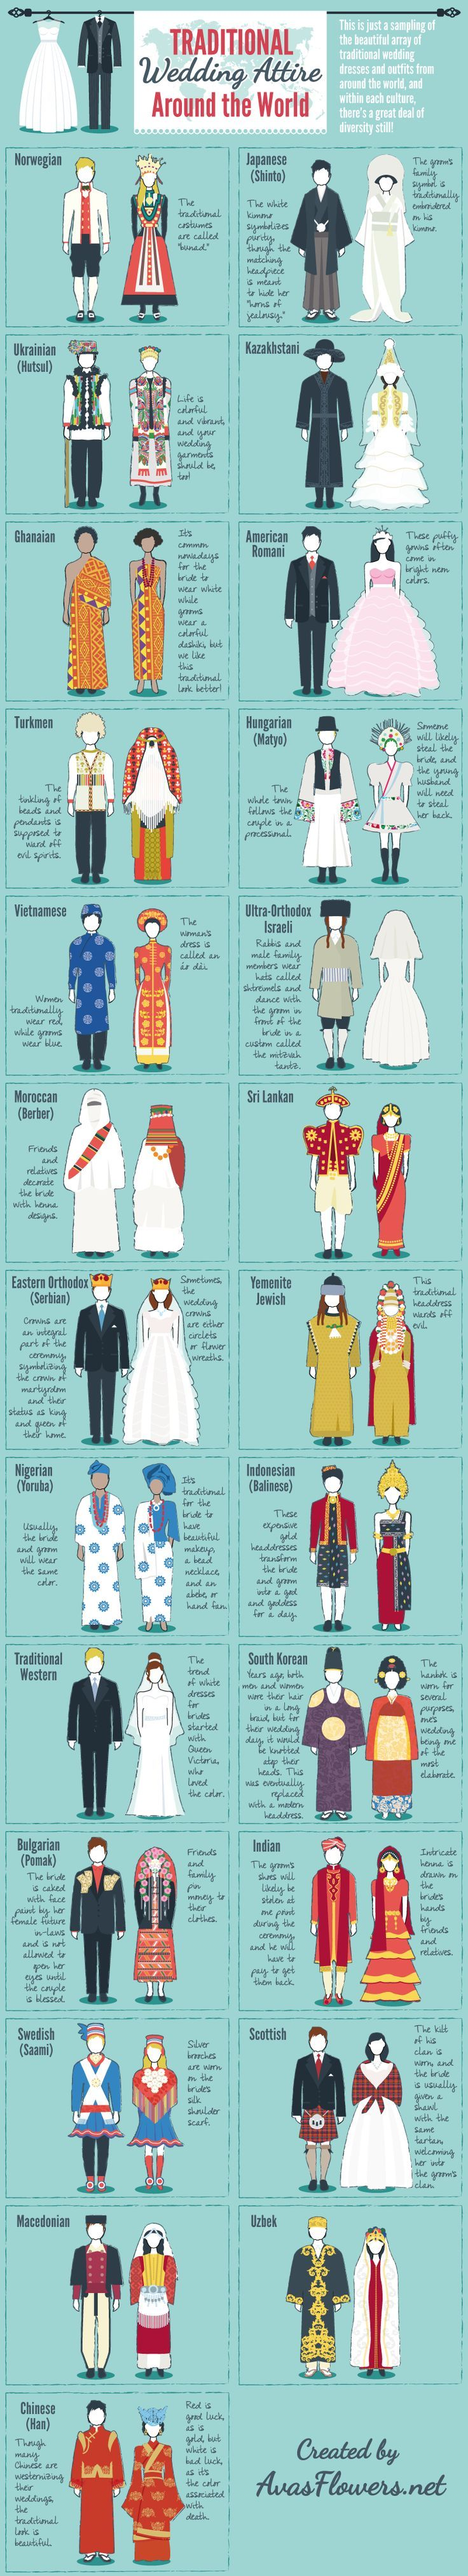 Cool Wedding Dresses Traditional wedding attire around the world  - Matador Network... Check more at http://24store.cf/fashion/wedding-dresses-traditional-wedding-attire-around-the-world-infographic-matador-network/